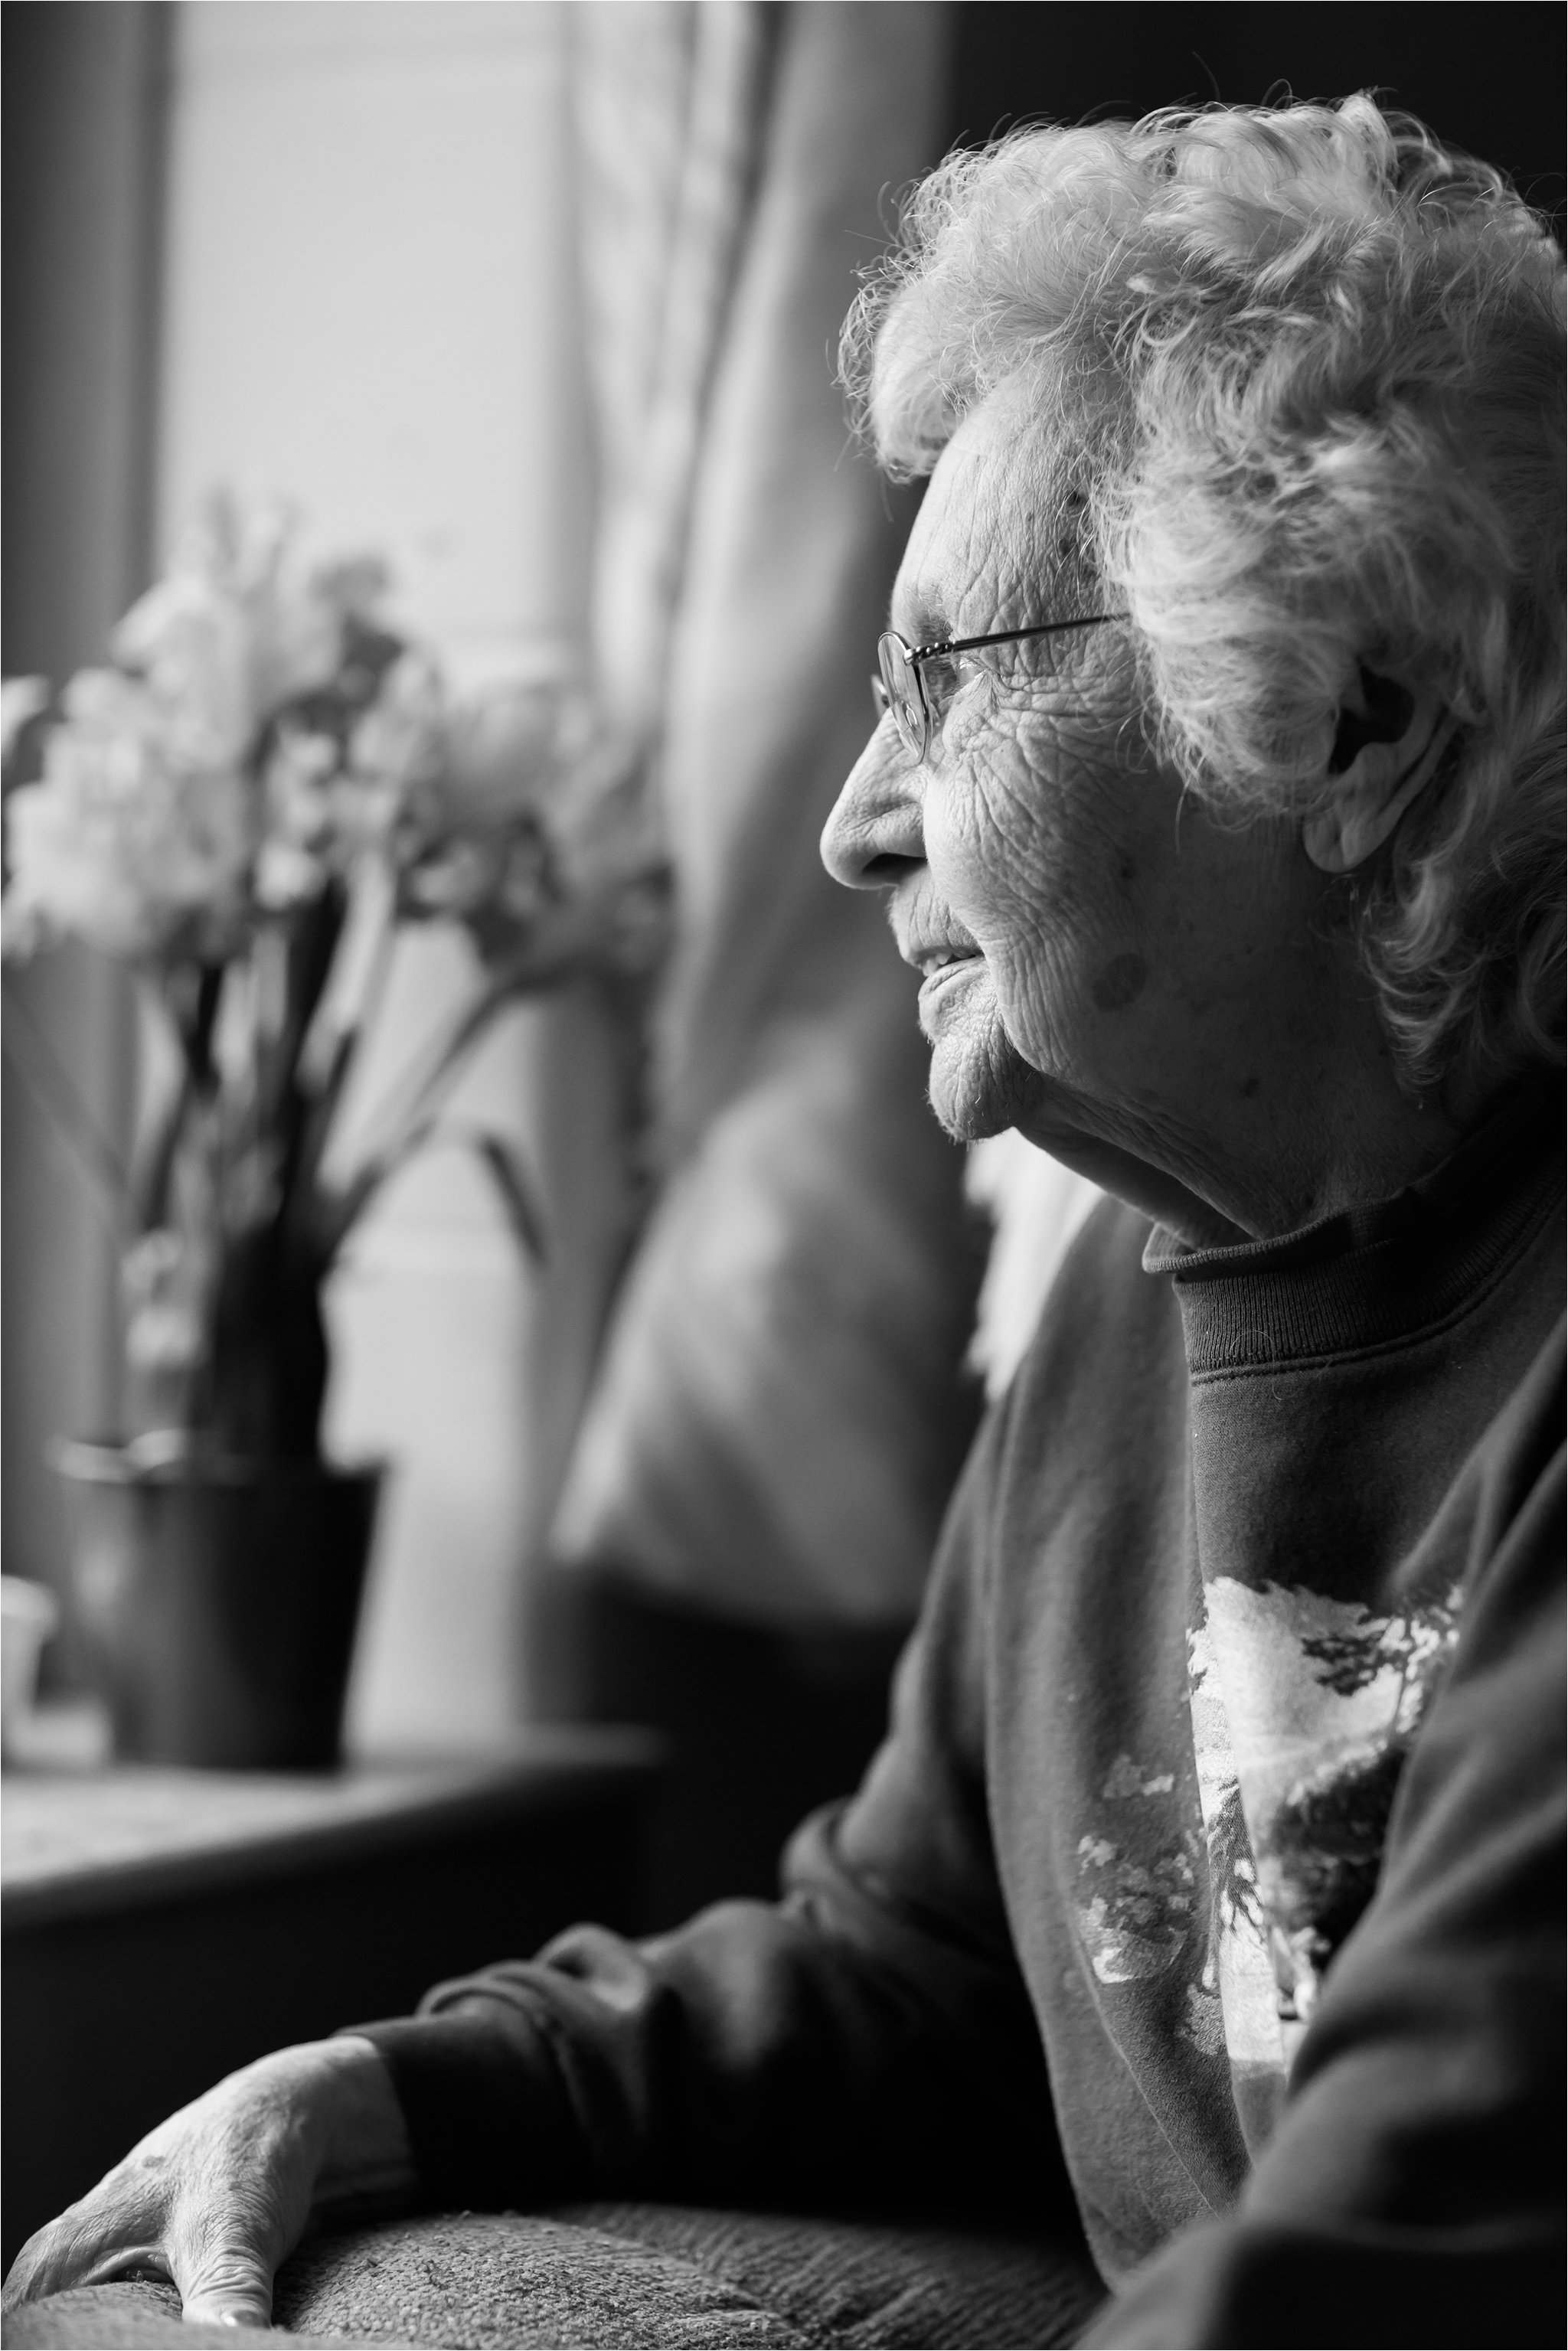 Black and White Portrait of Elderly Woman at Window